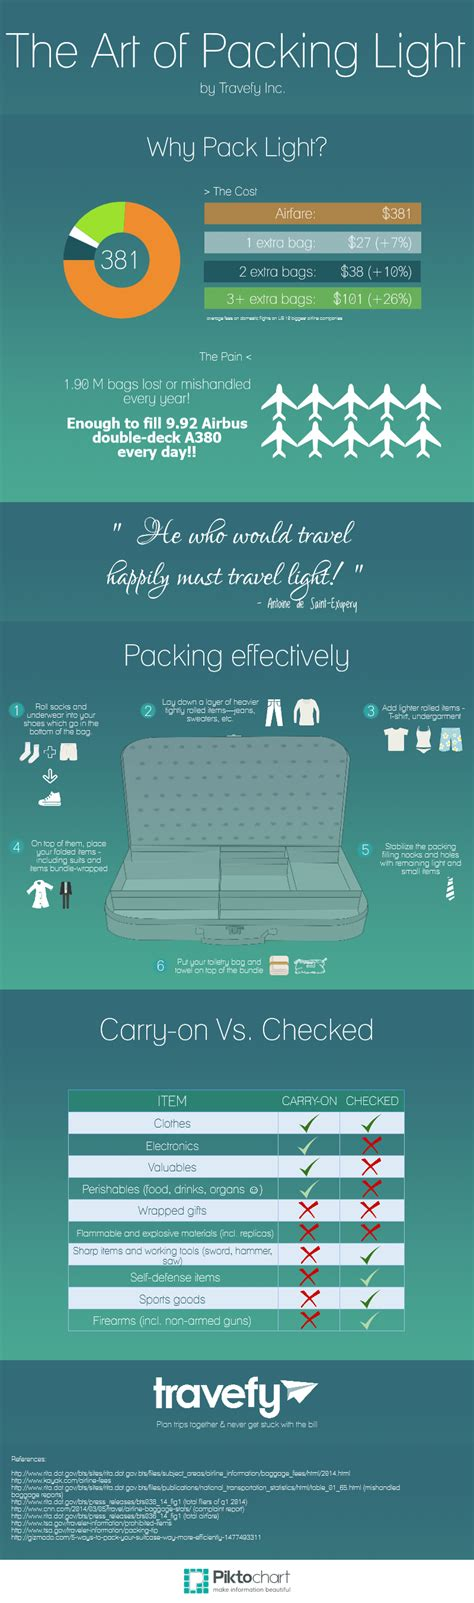 infographic step by step tips for packing light travefy